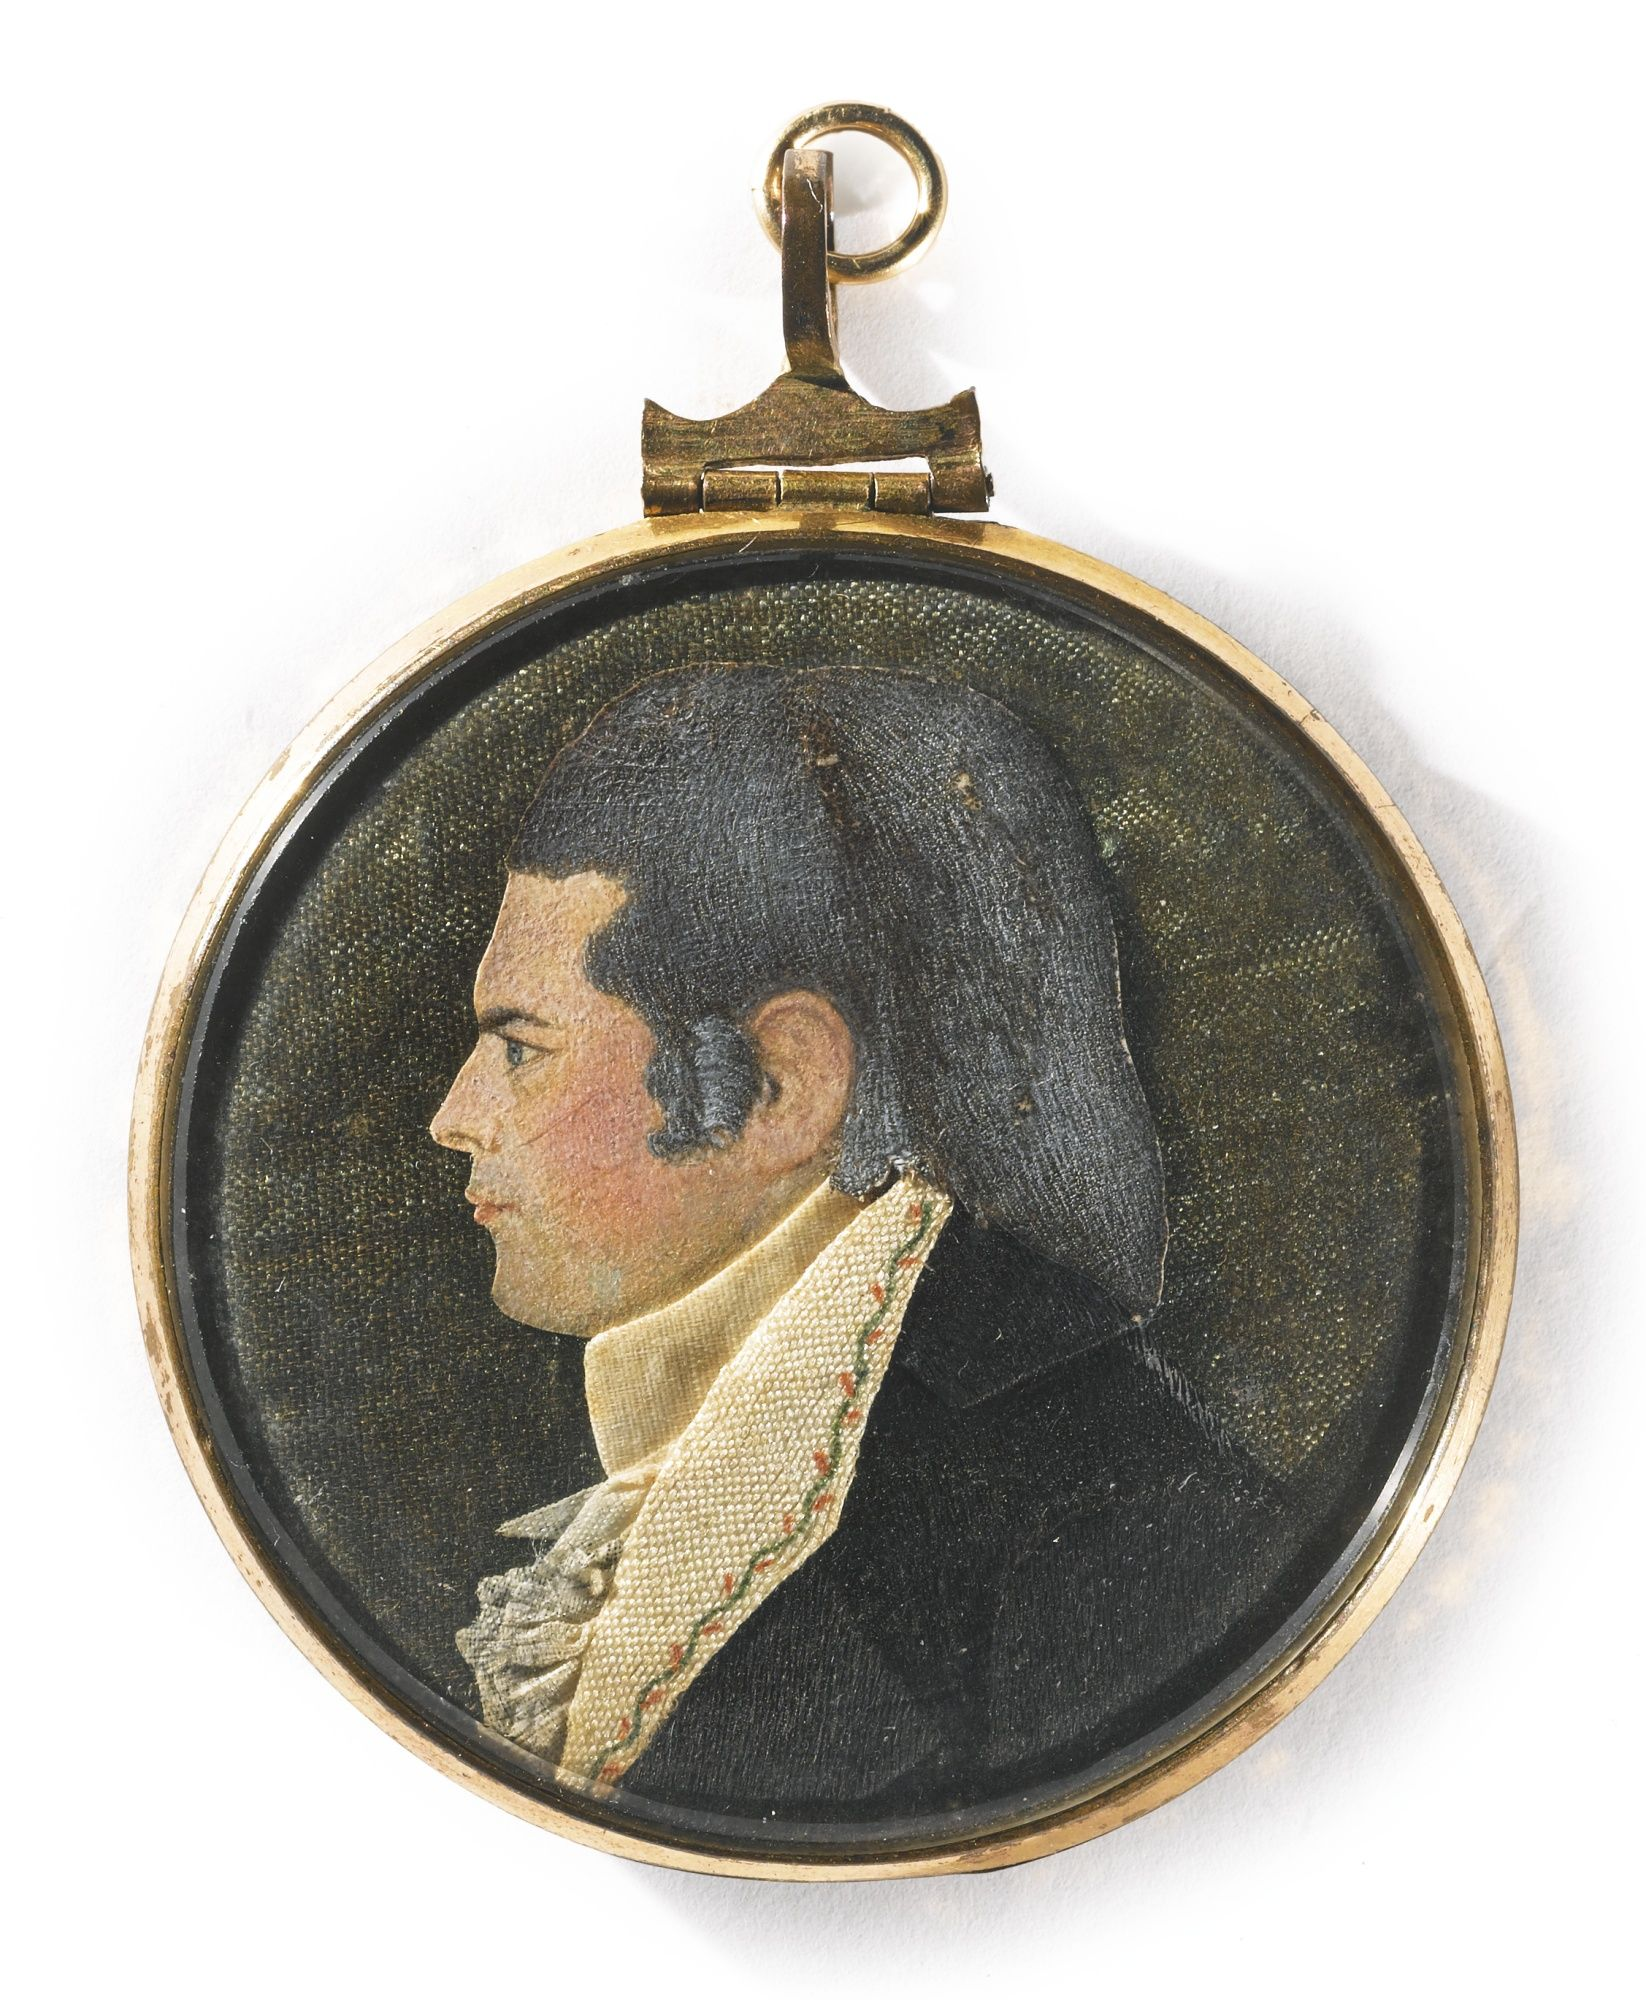 """A """"Dressed"""" Miniature Portrait of a Gentleman by Mary B. Way (1769-1833), New London, Connecticut, circa 1800 - A """"dressed"""" miniature profile bust portrait of a rosy-cheeked young man, of appliquéd fabric, the reverse with a watercolor of a lady standing beside a monument, in a circular gold-metal locket frame with a painted glass mat in gold, black and white enamel.  Diameter 2 inches; 2 1/8 by 1 7/8 inches."""